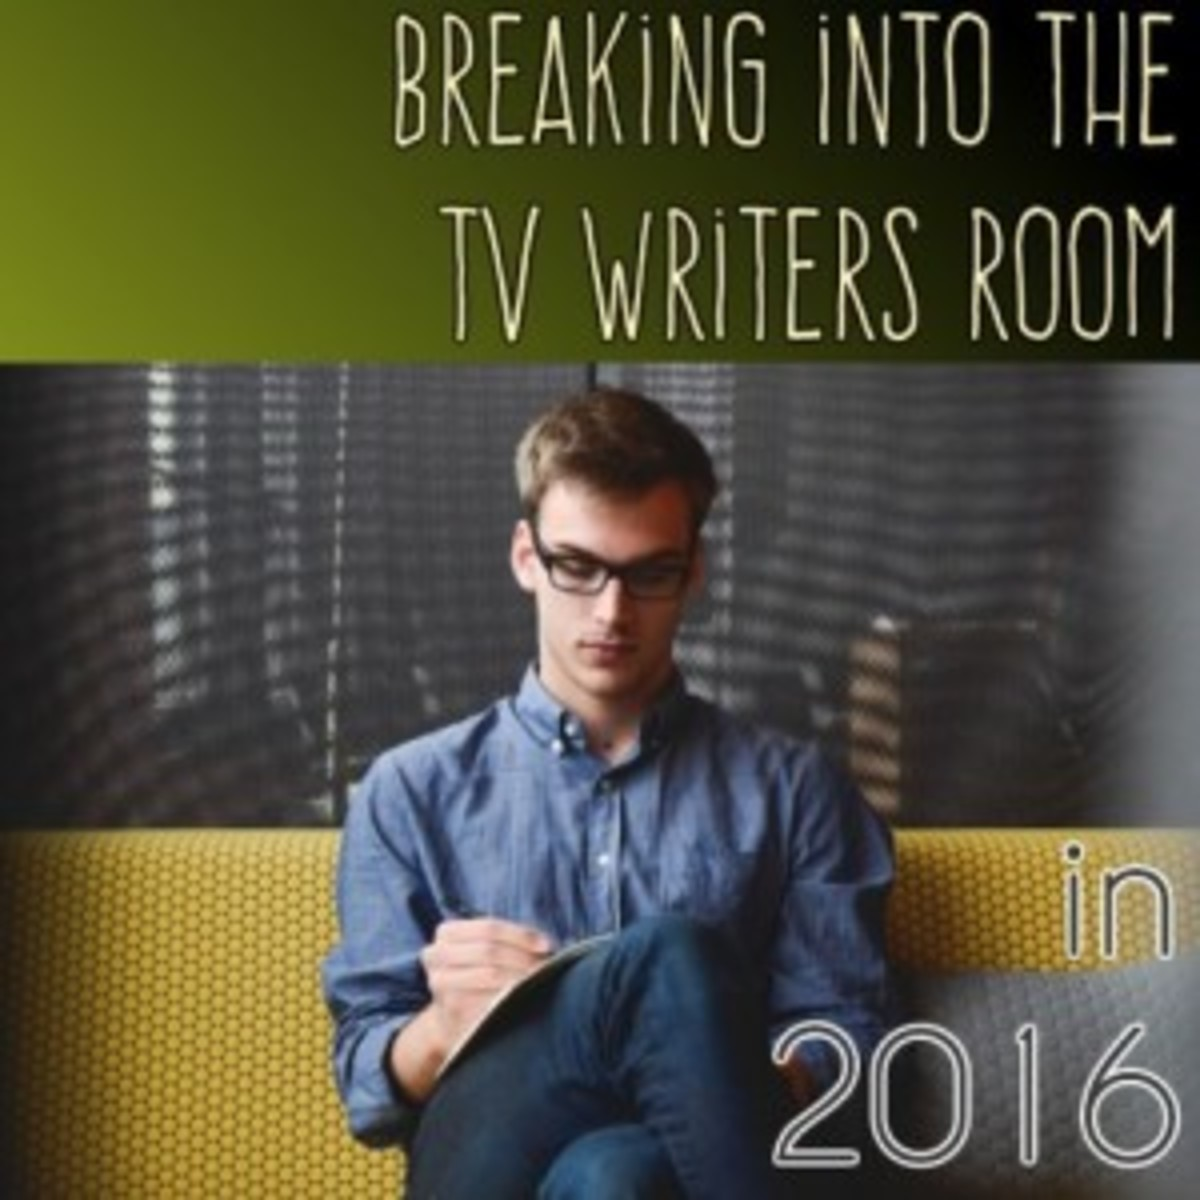 tws-writers-room-2016_medium